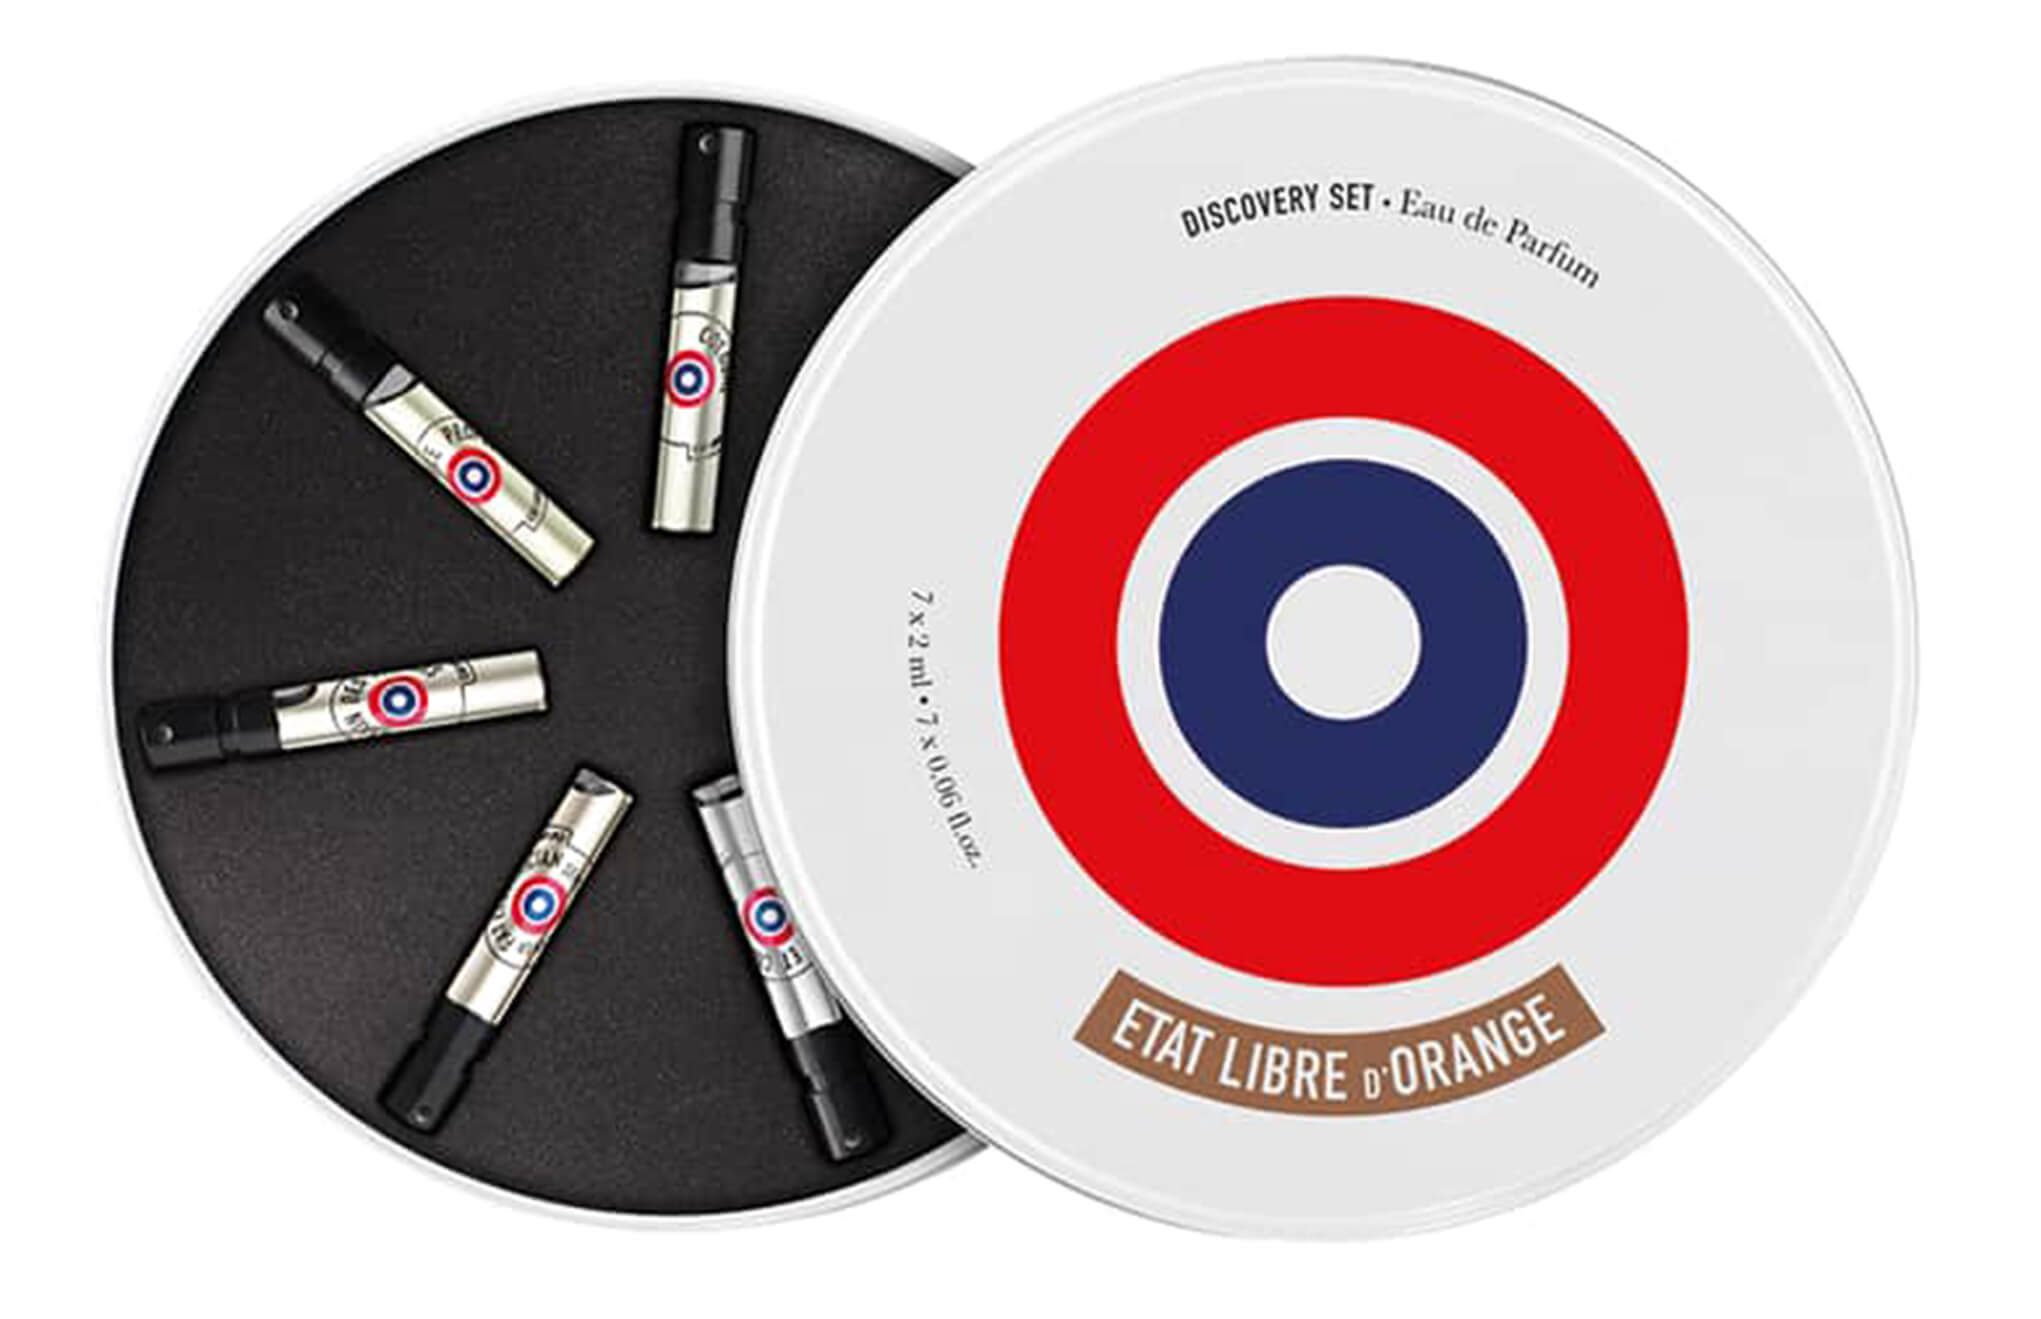 OuiPlease Valentine's Day Gifts For Him Etat Libre d'Orange